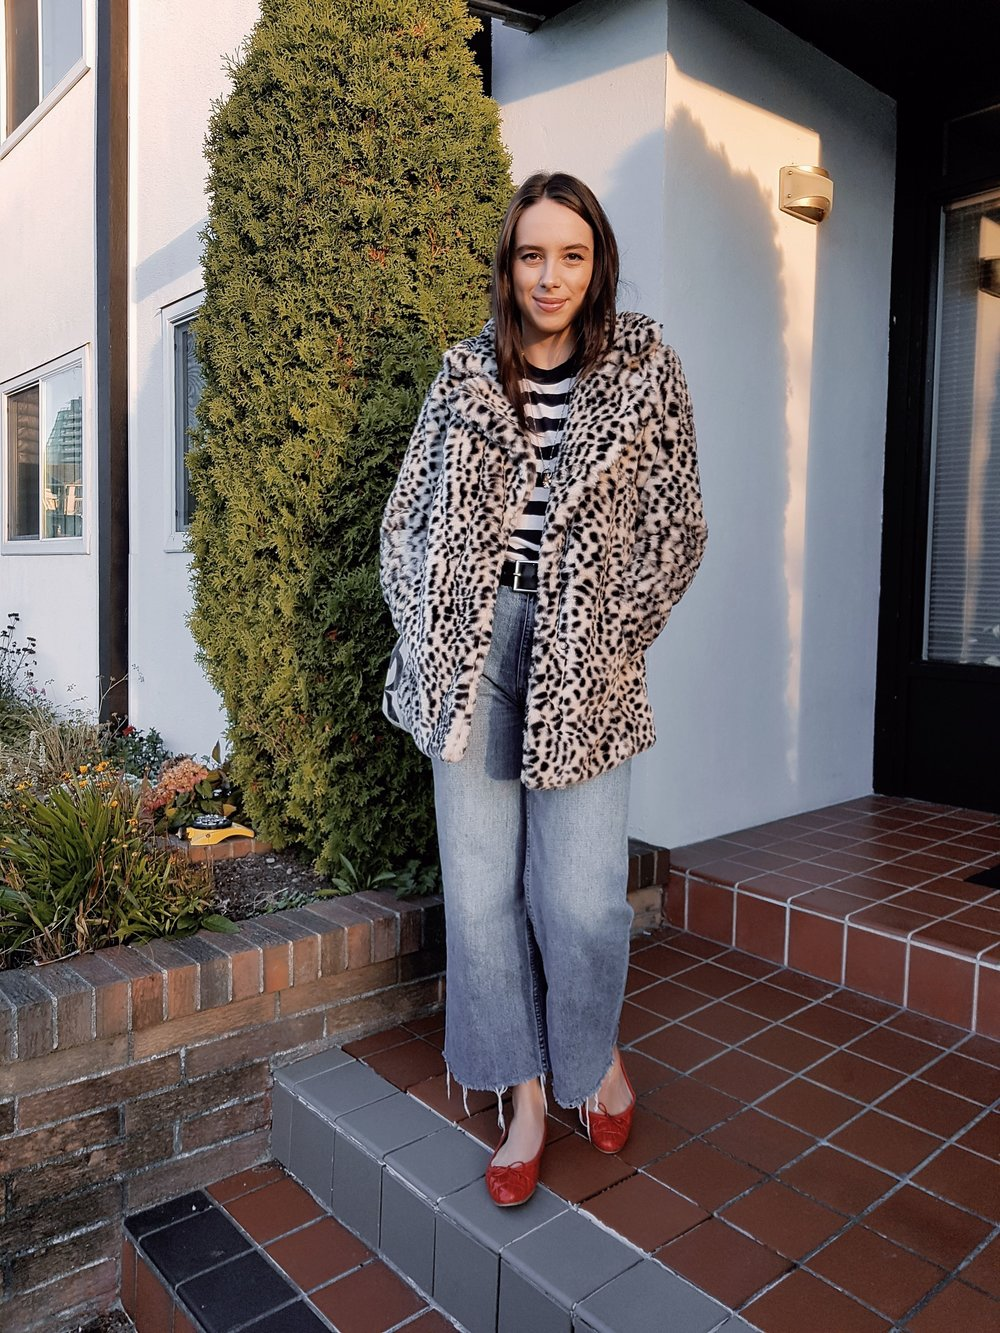 MONDAY - Brandy Melville shirt, BDG jeans, Dynamite coat, Zara flats*My fave outfit of the week - comfy as hell yet glamorous. I've wanted that jacket since August. It probably deserves it's own post…